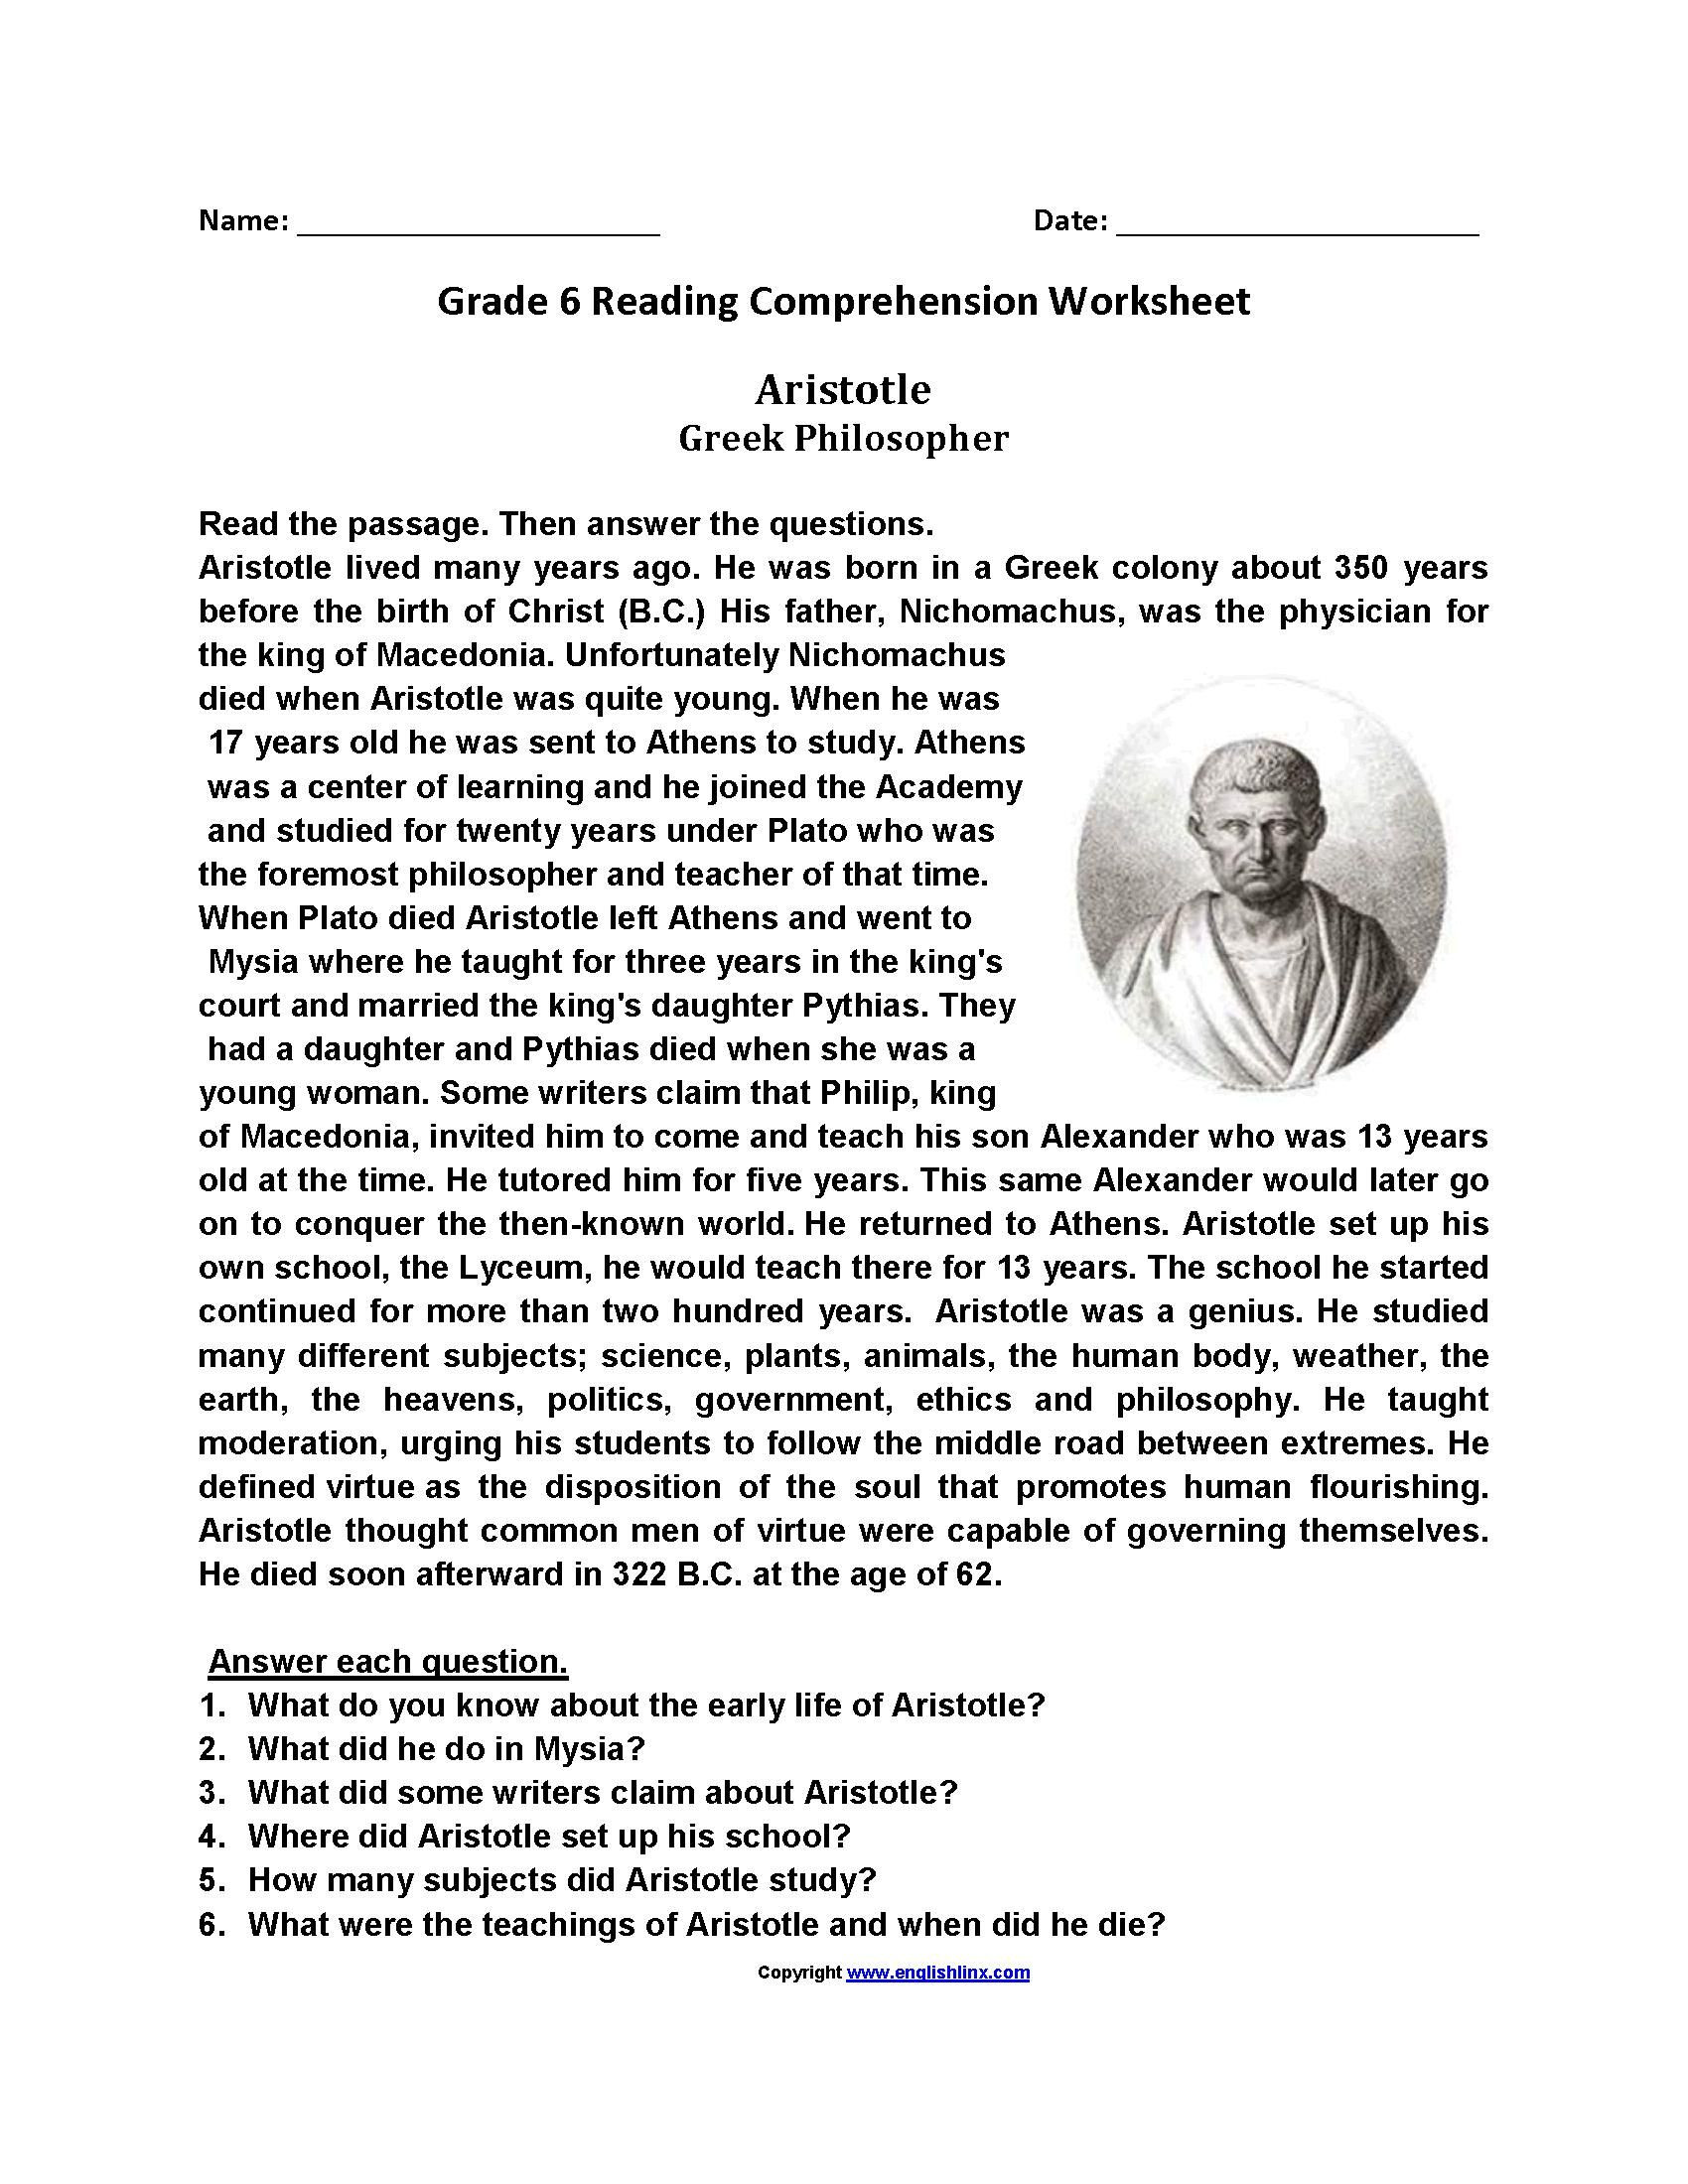 Comprehension Worksheets for Grade 6 Free Printable Reading Worksheets for Grade 6 в 2020 г